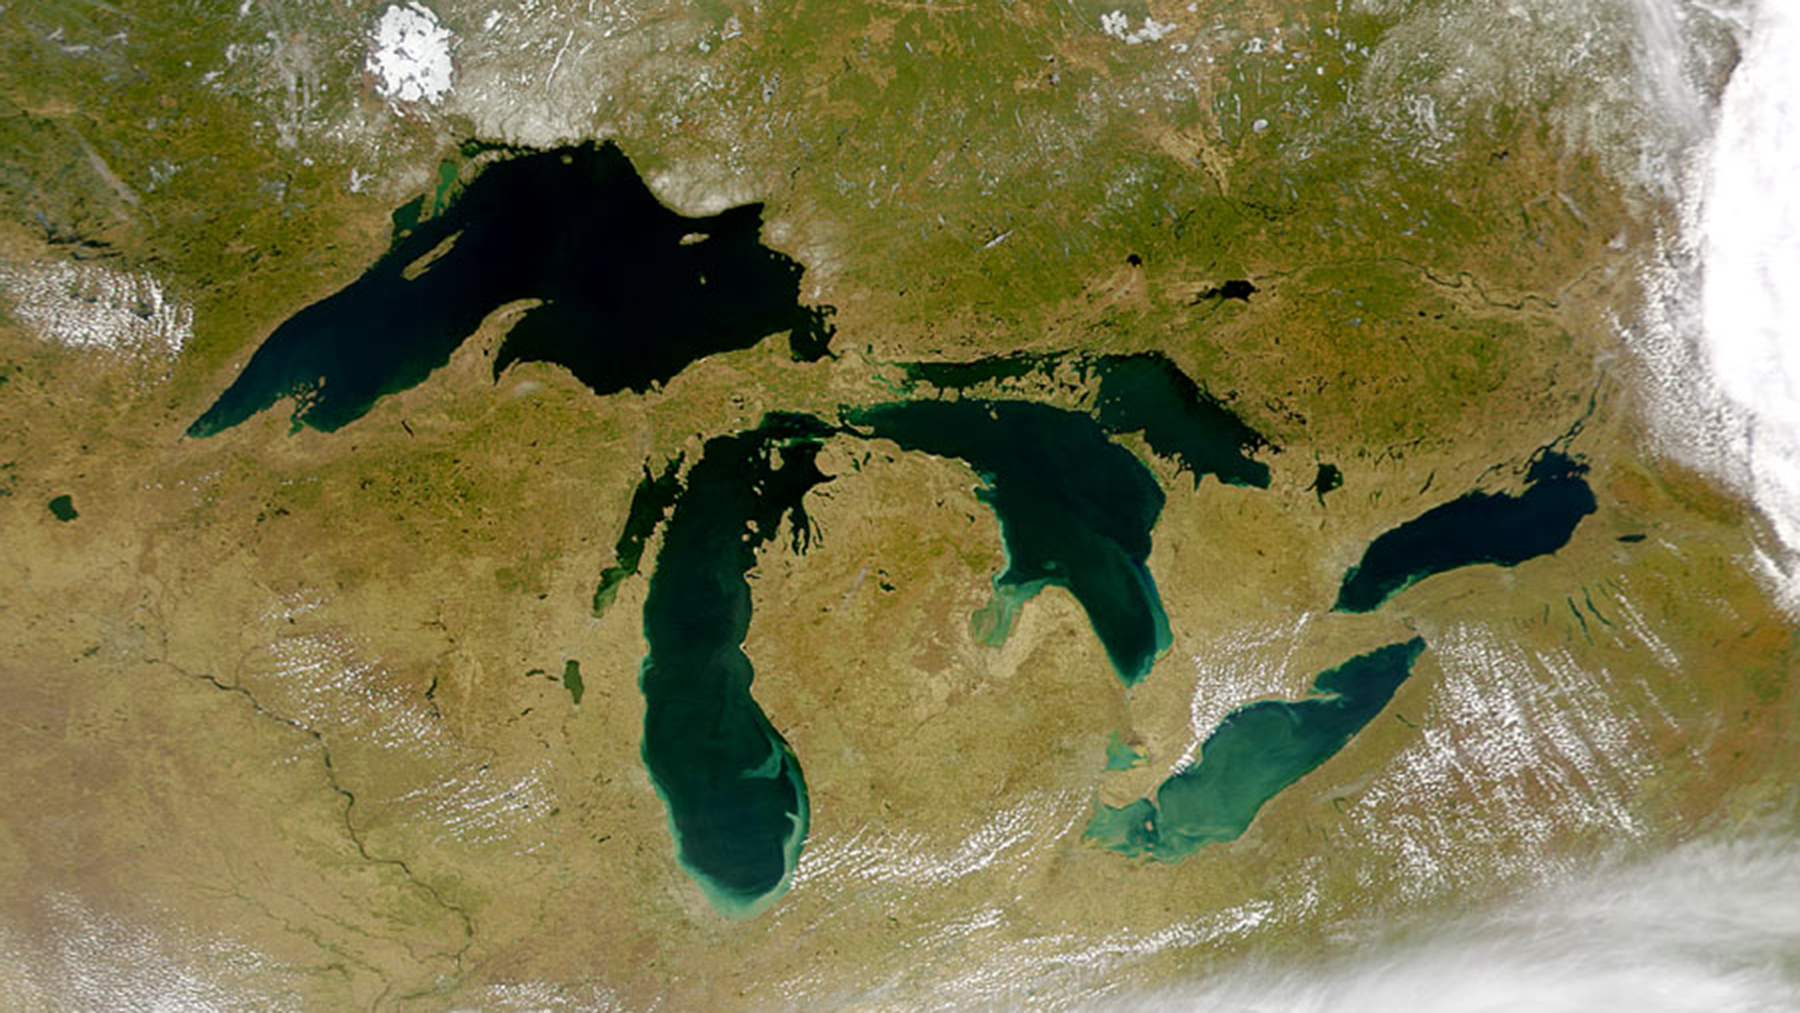 The Great Lakes as seen from space. Photo by:  SeaWiFS Project, NASA/Goddard Space Flight Center, and ORBIMAGE